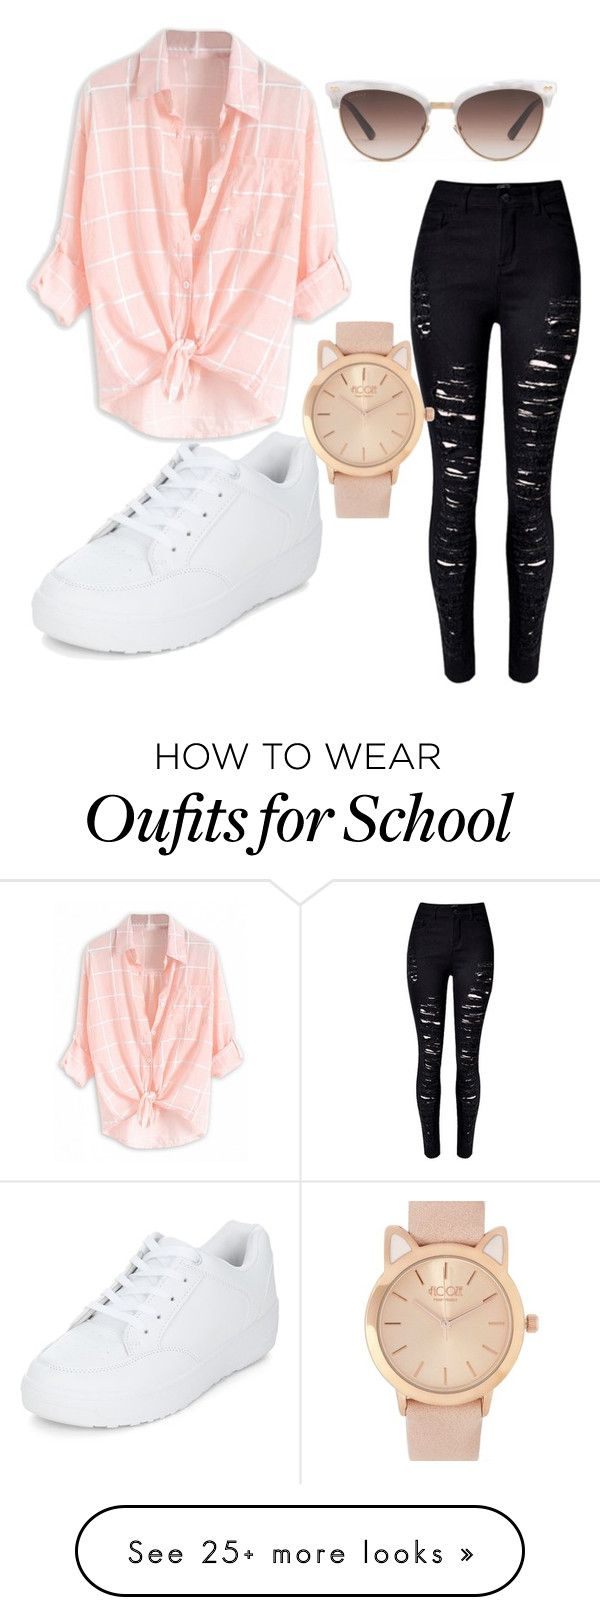 """School outfit"" by miaj0rdan on Polyvore featuring Gucci, WithChic and New Look"